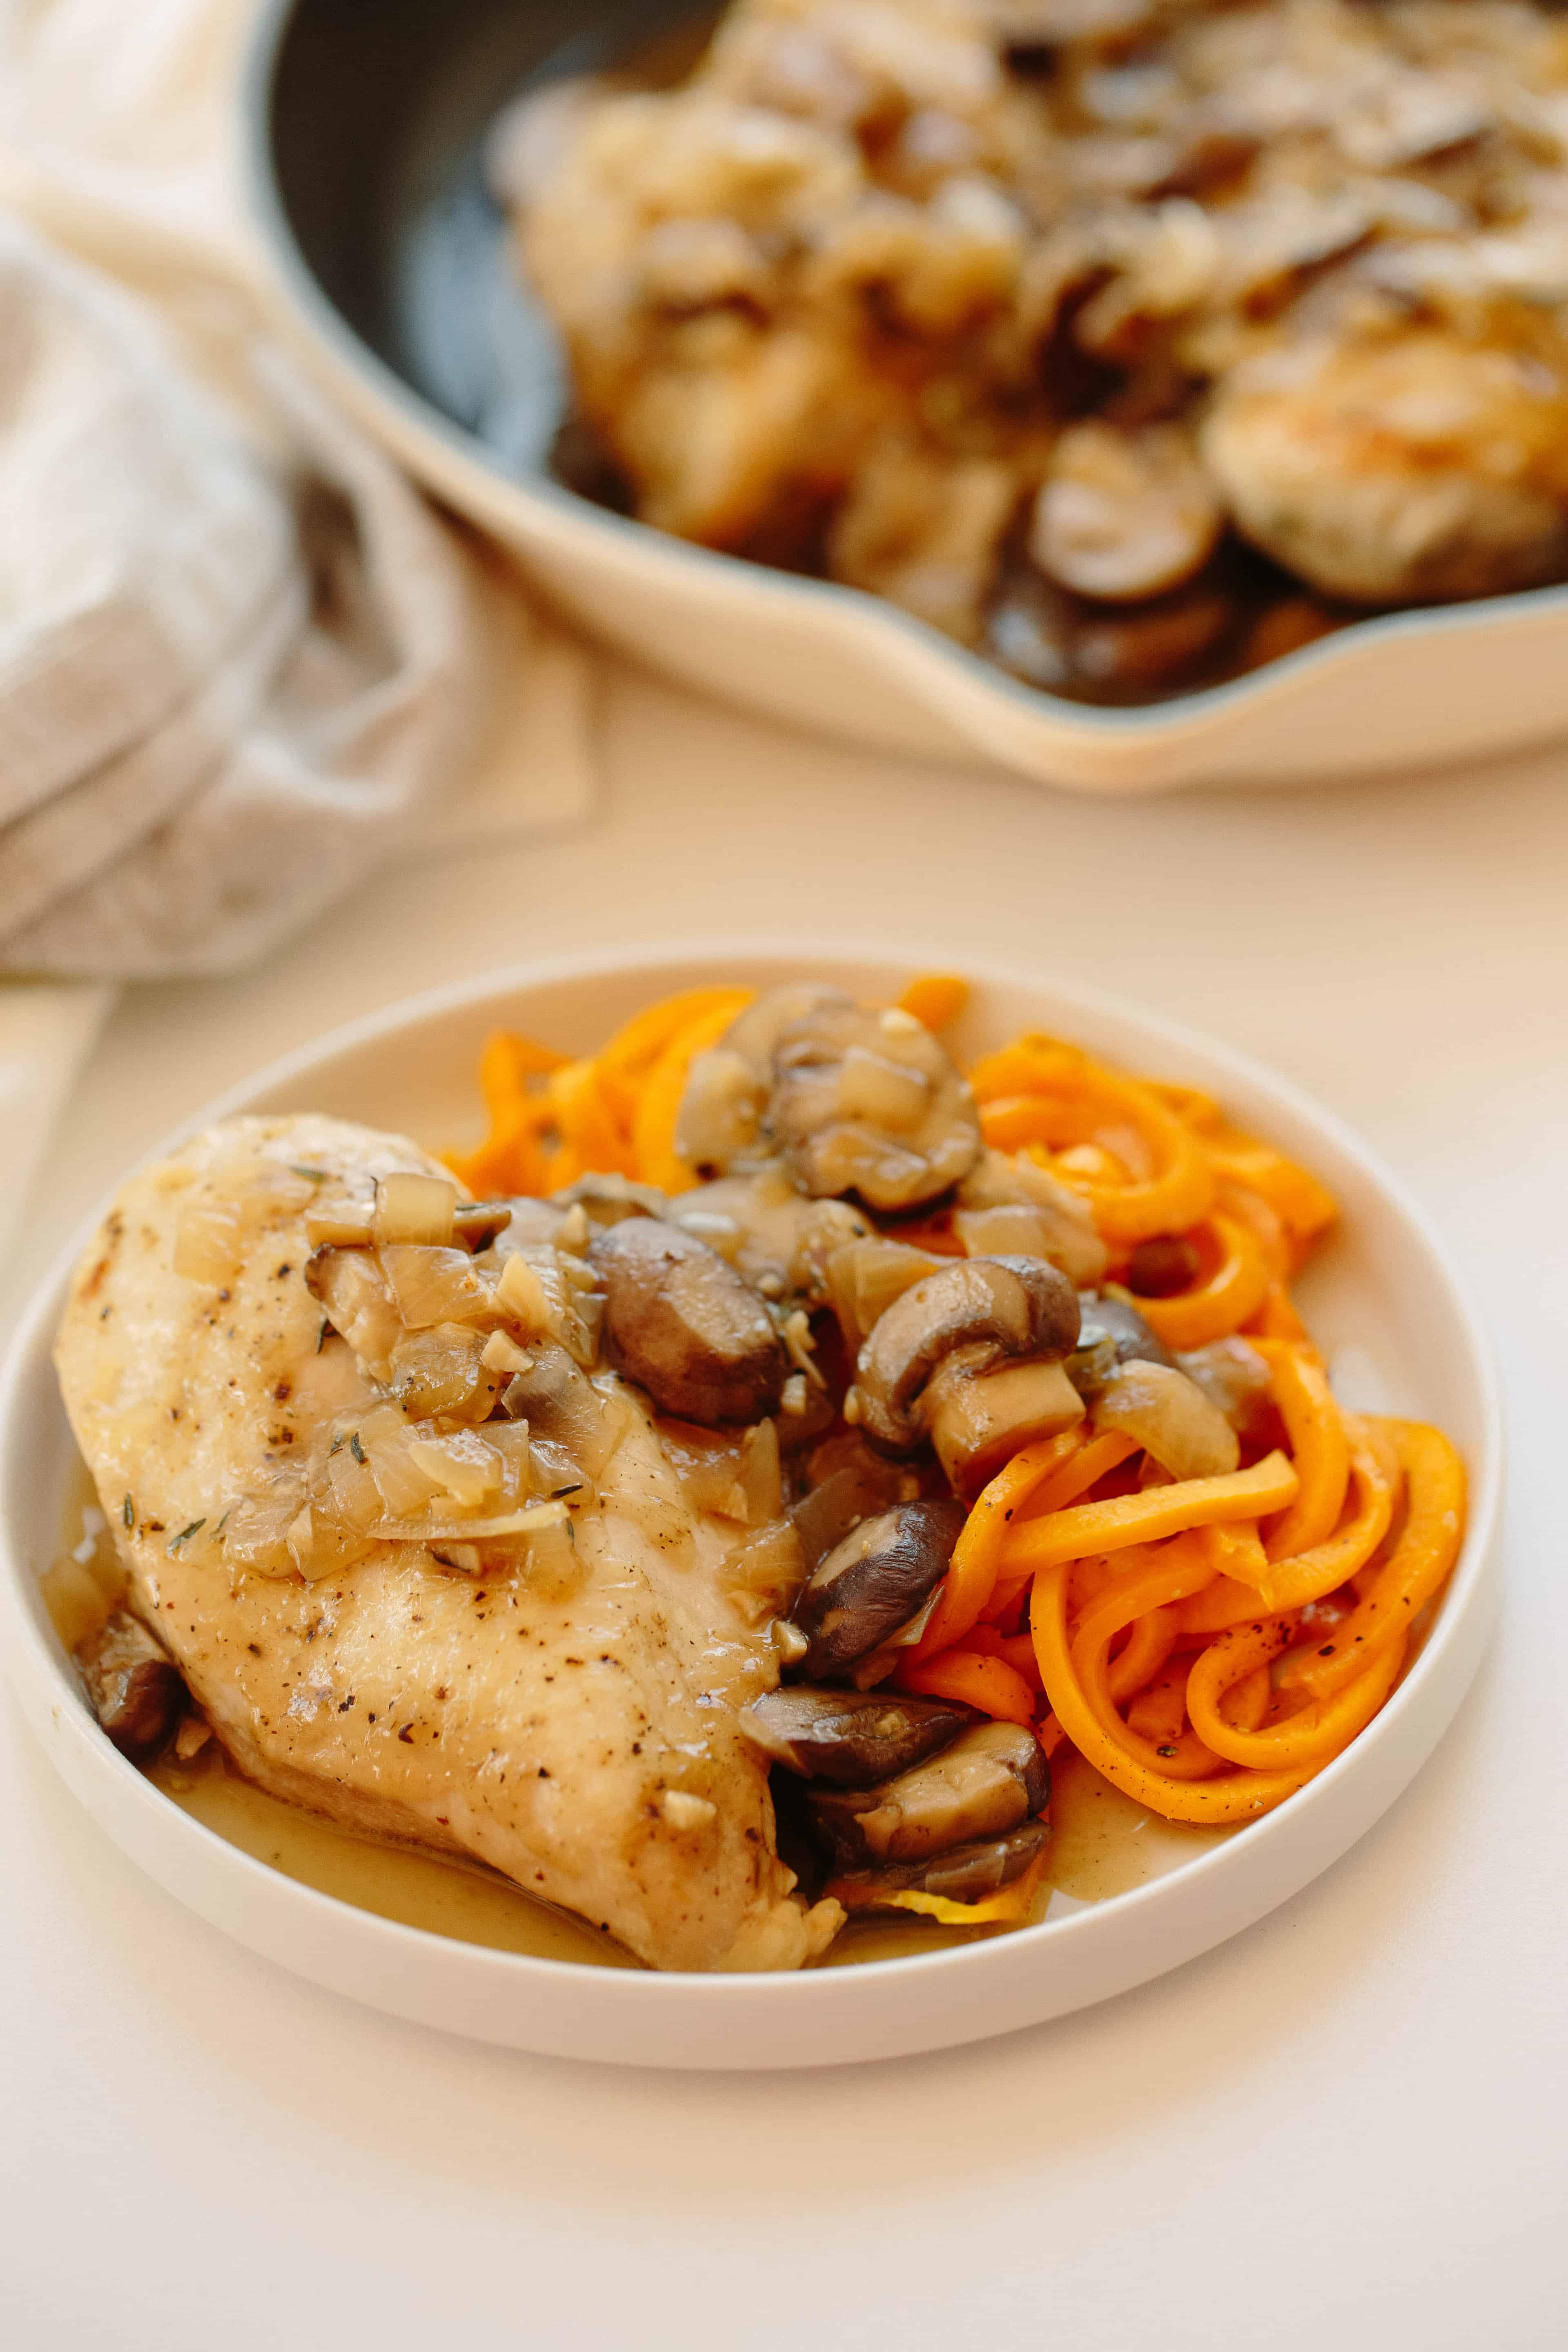 CHICKEN IN MUSHROOM SAUCE WITH BUTTERNUT SQUASH NOODLES